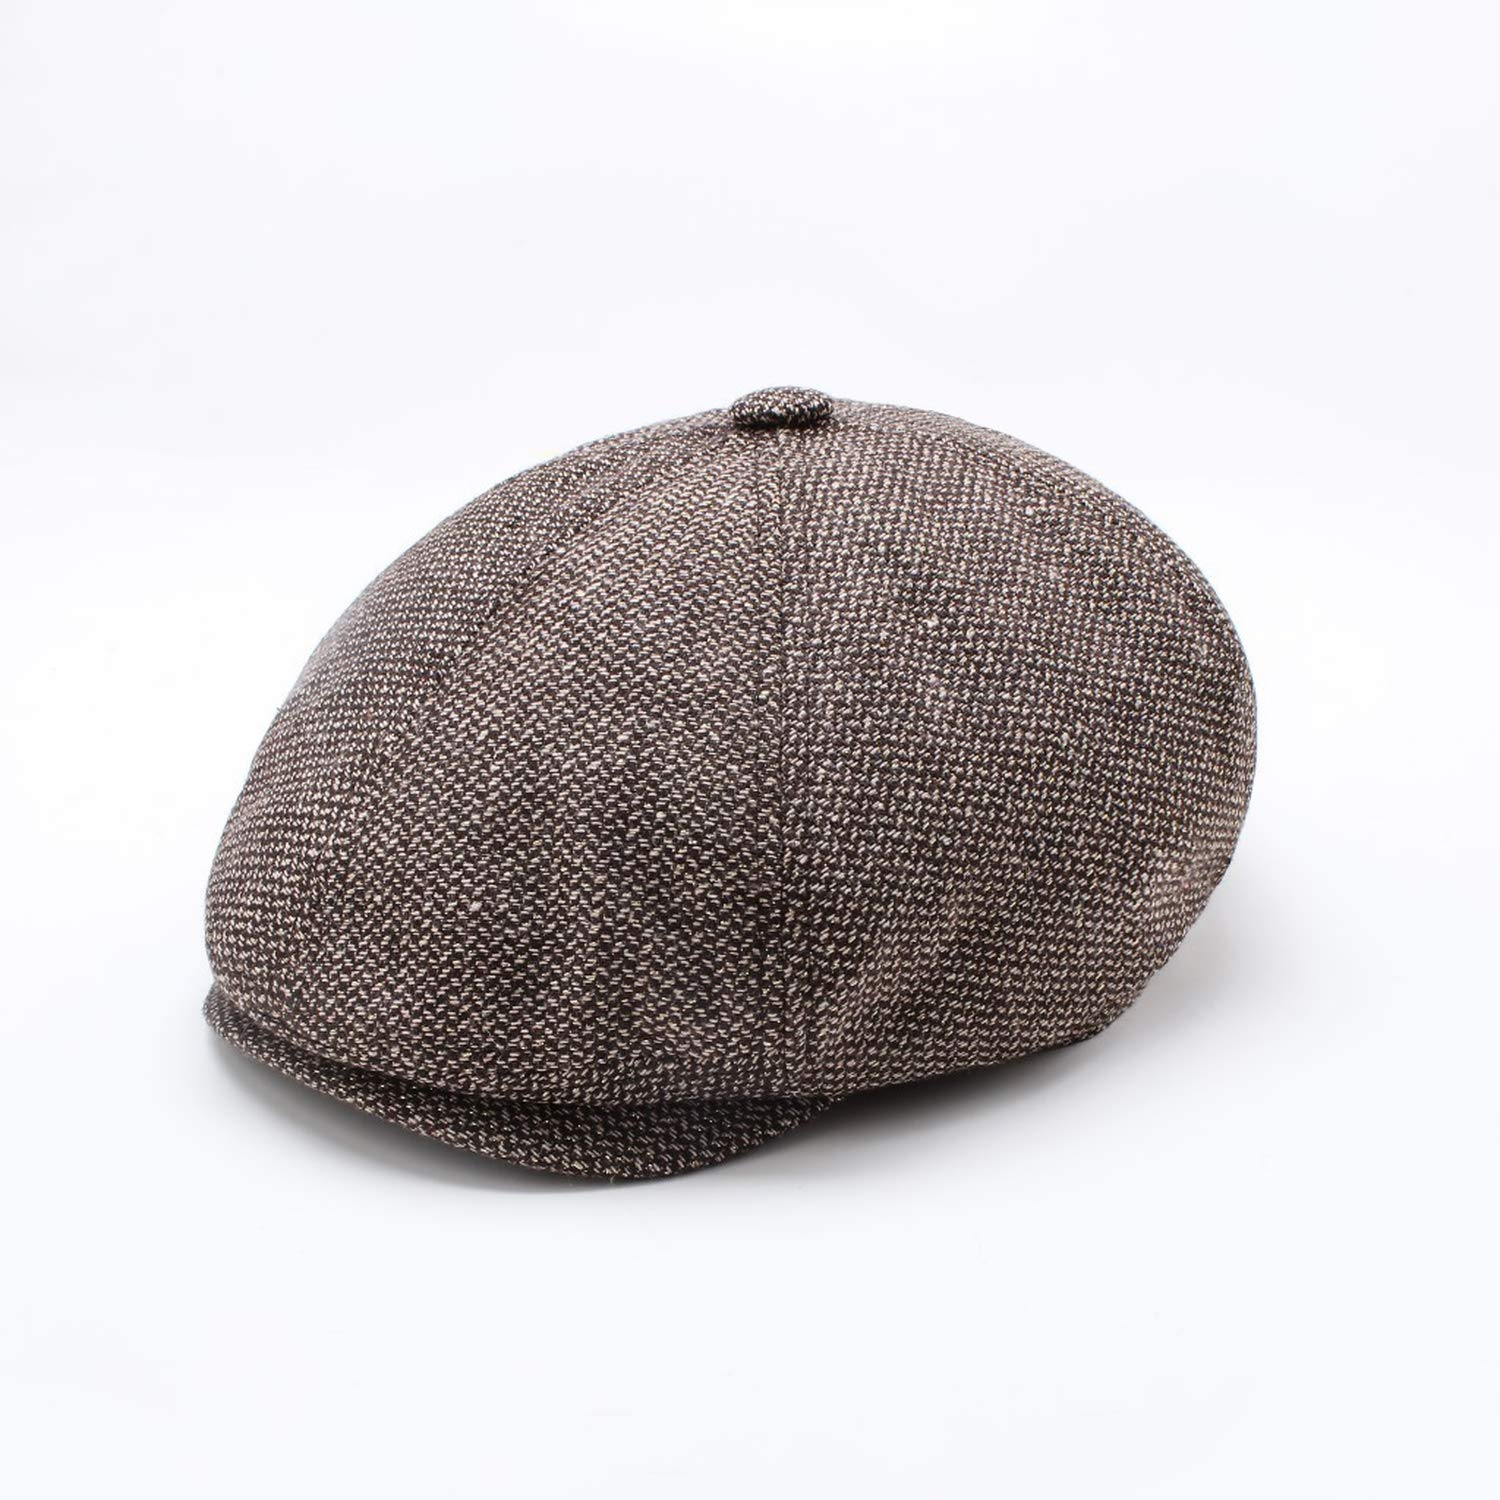 e92dc03461e25 Sivane Man Octagonal Hat Wool Felt Beret Casual Painter Cap Autumn and Winter  Ivy Hat Male Fitted Newsboy Cap at Amazon Men s Clothing store